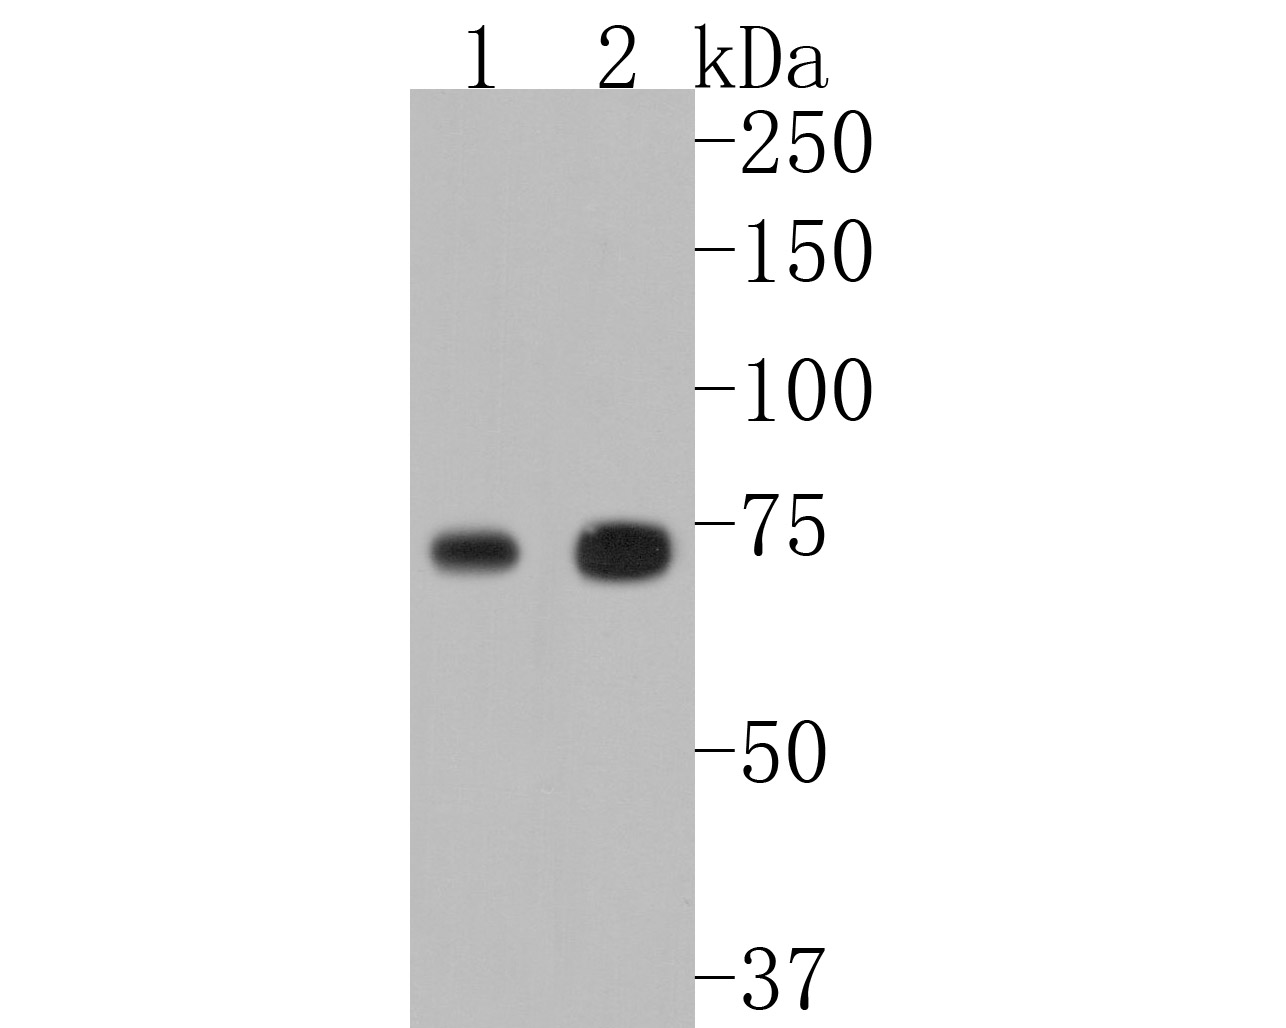 Western blot analysis of TAK1 on human placenta tissue lysate using anti-TAK1 antibody at 1/1,000 dilution.